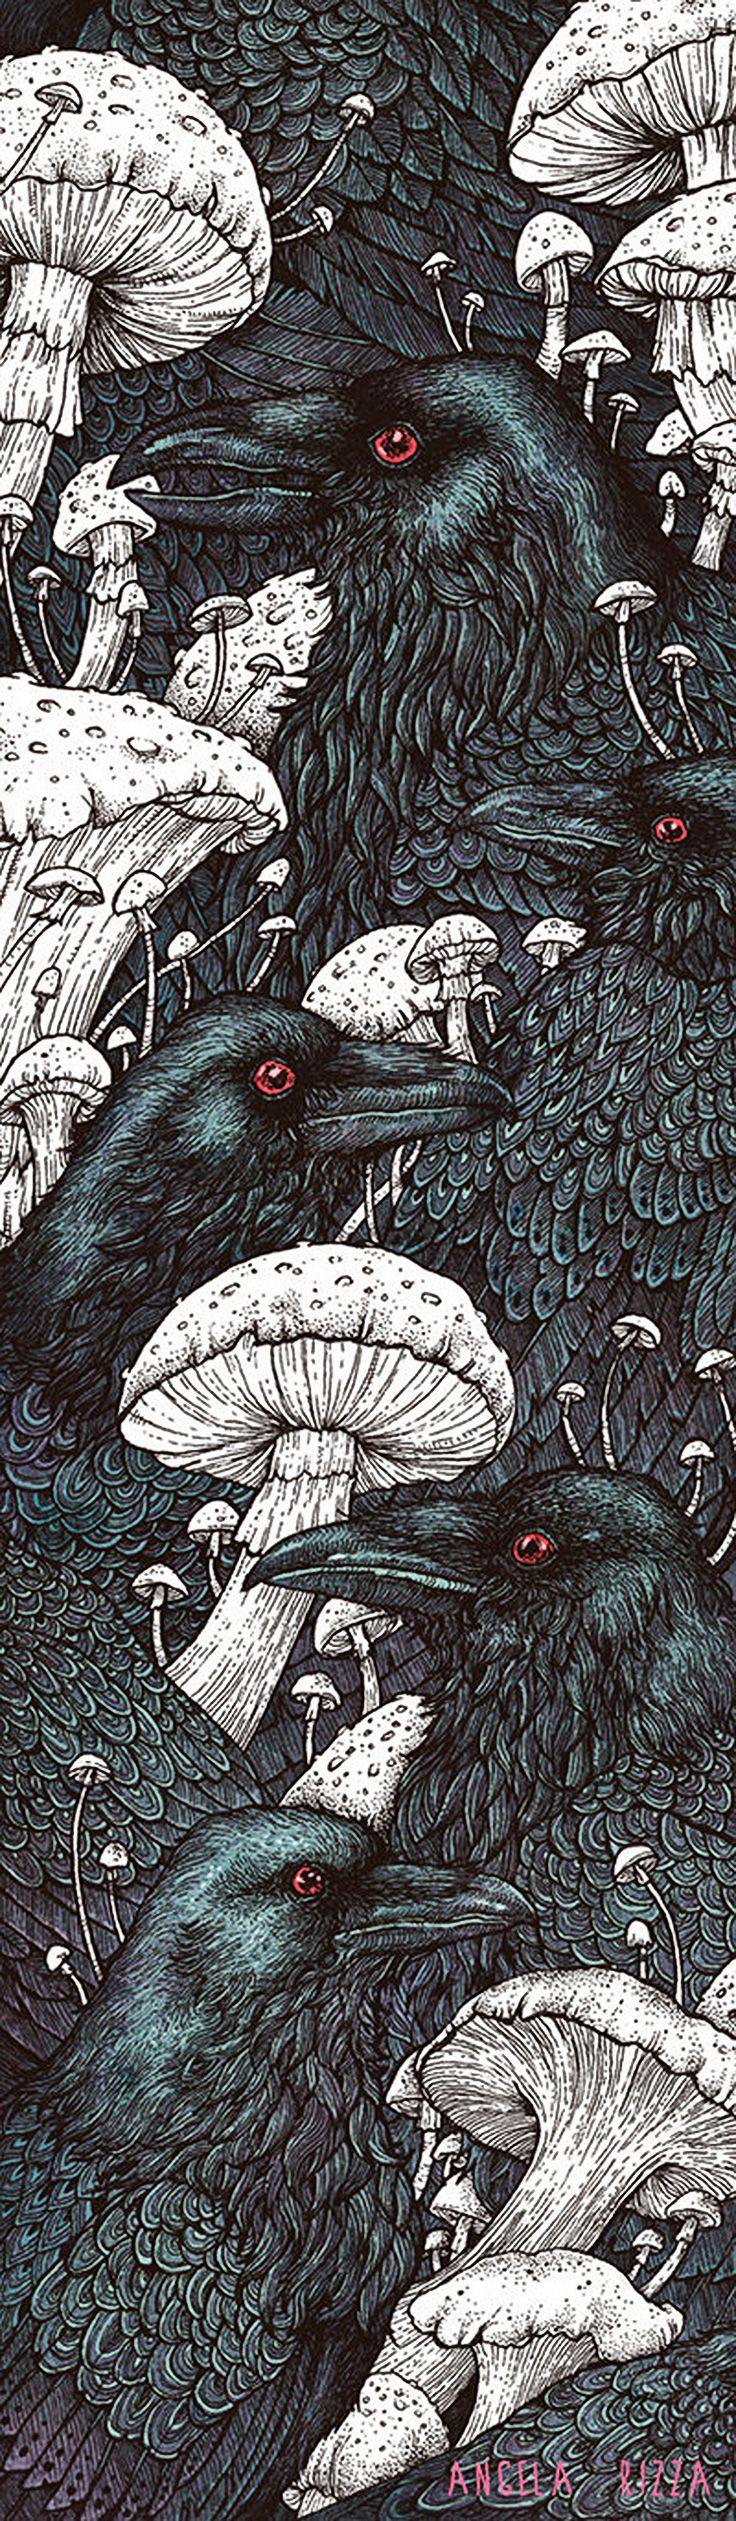 """Decay"" - Angela Rizza {contemporary artist animals crows #ravens birds mushrooms illustration} angelarizza.deviantart.com"